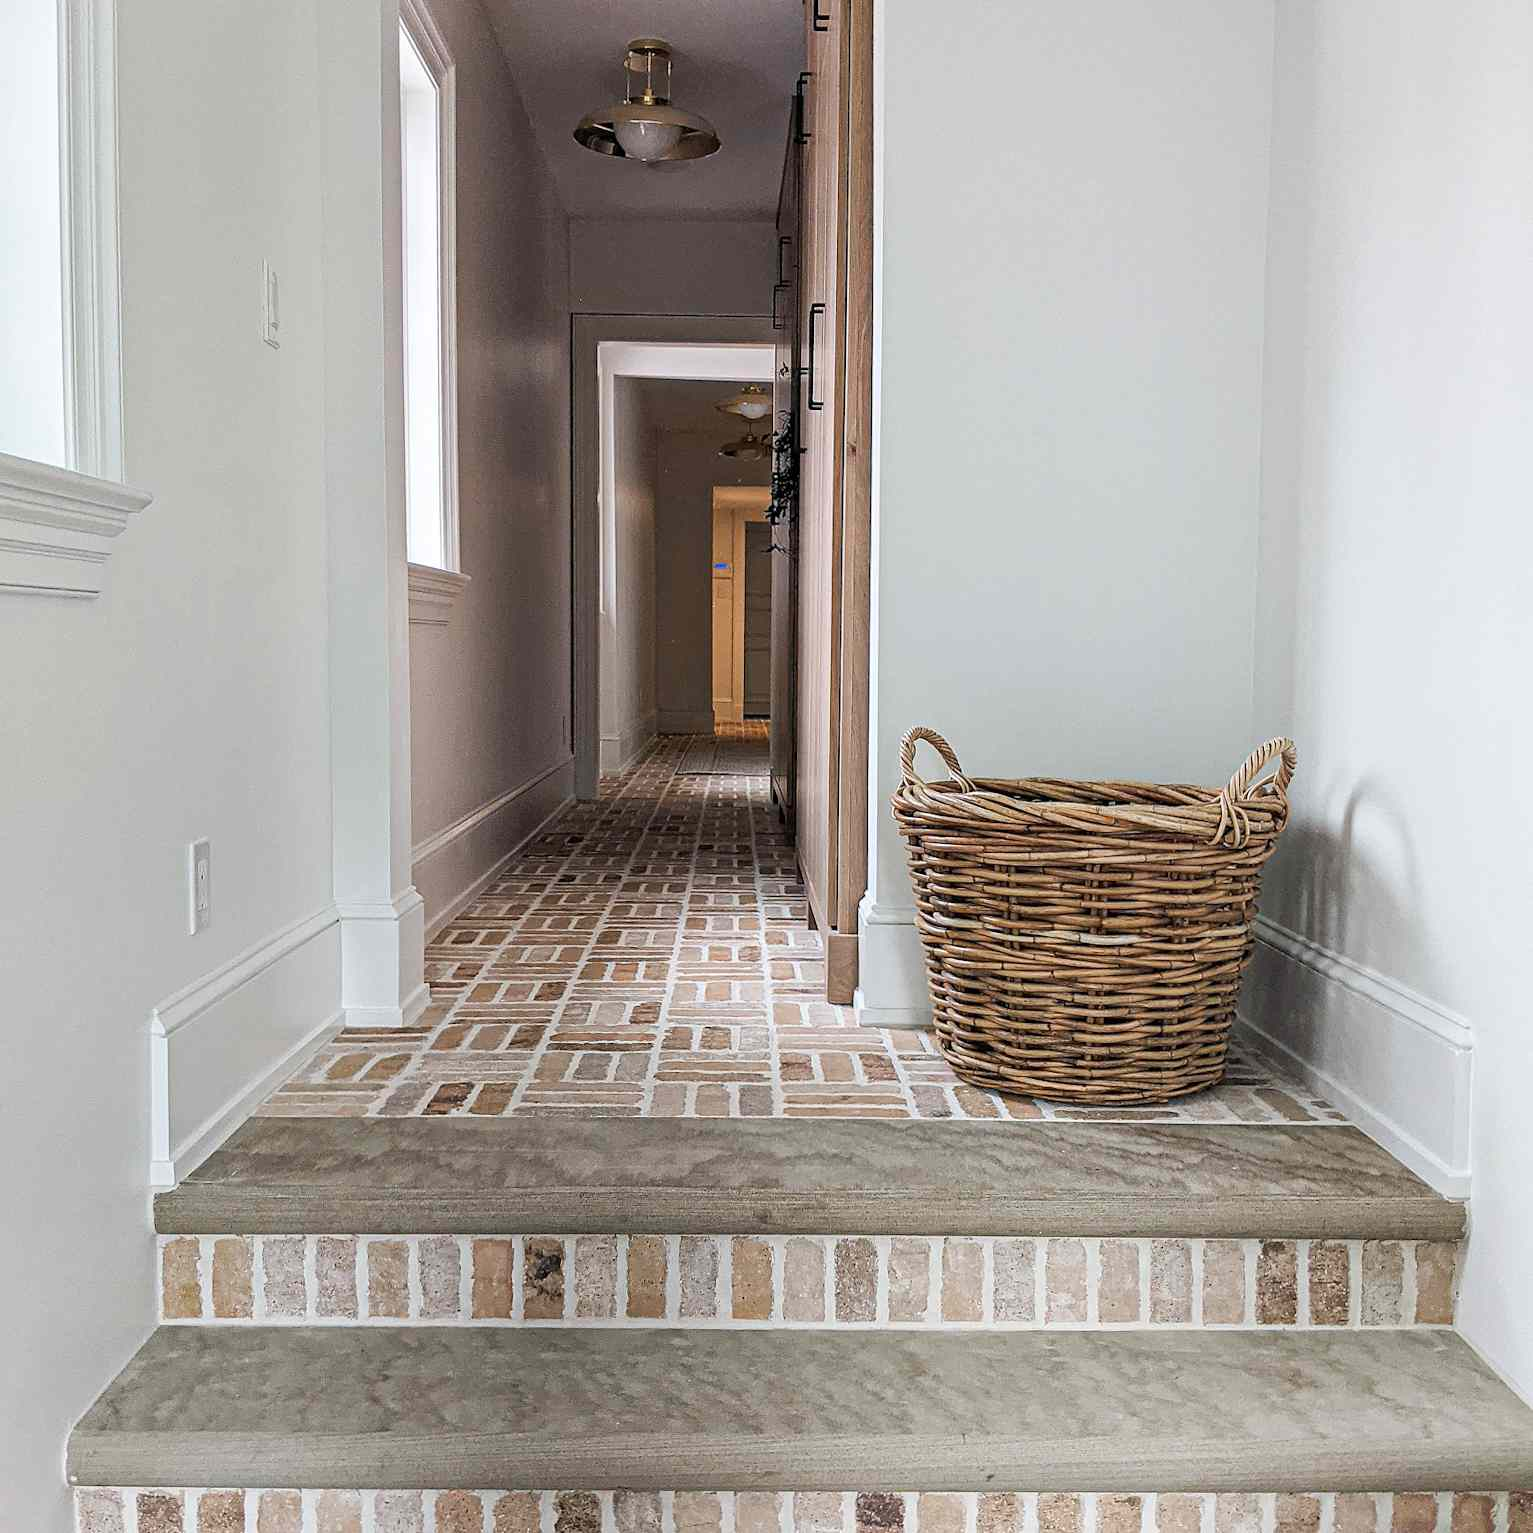 brick stairs with a wicker basket in a hallway